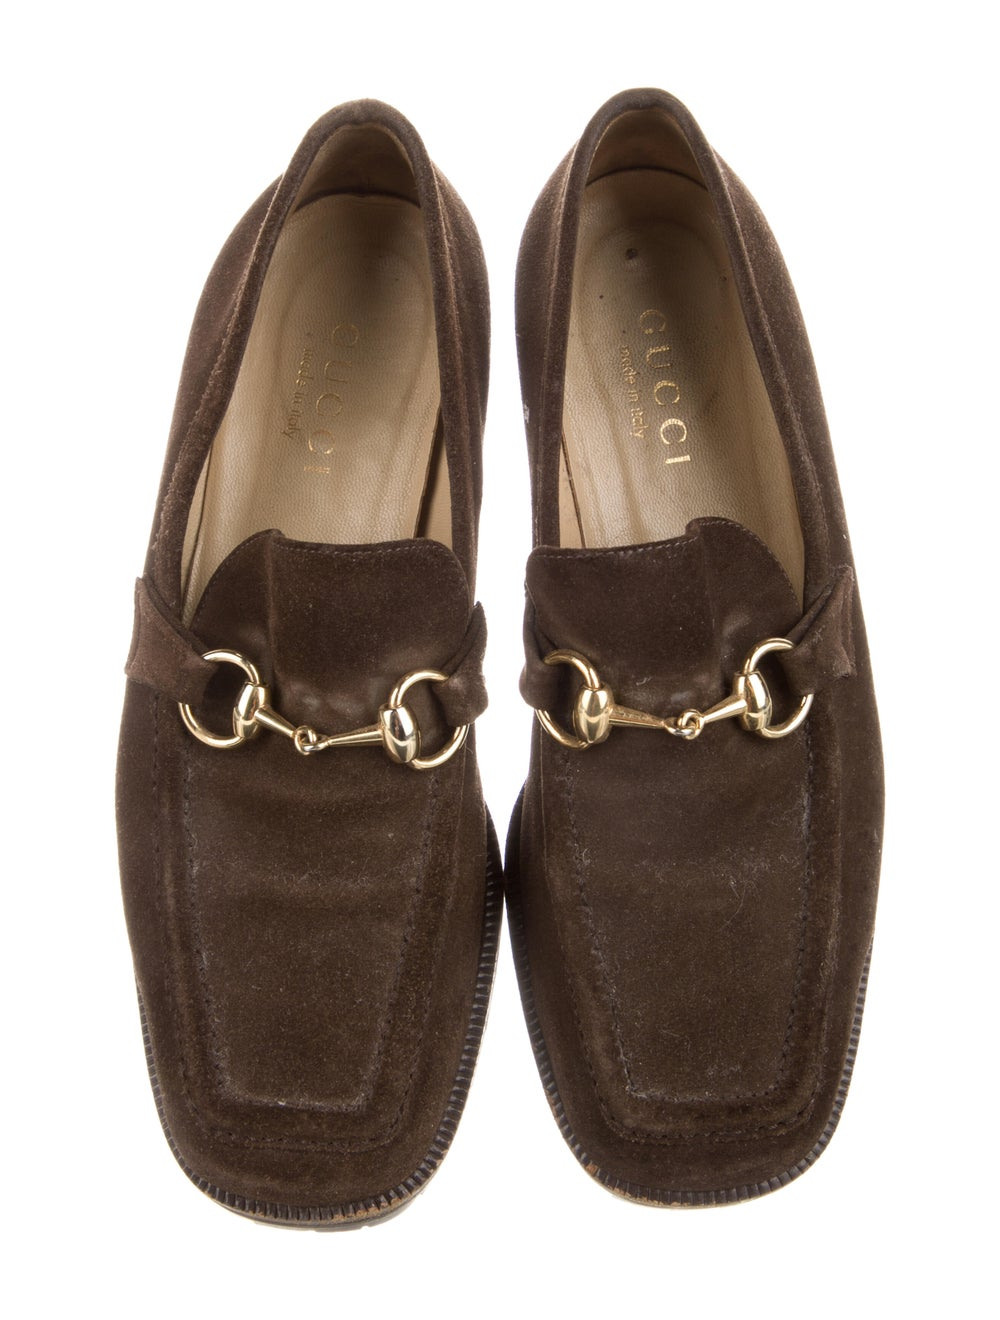 Gucci Horsebit Accent Suede Loafers Brown - image 3